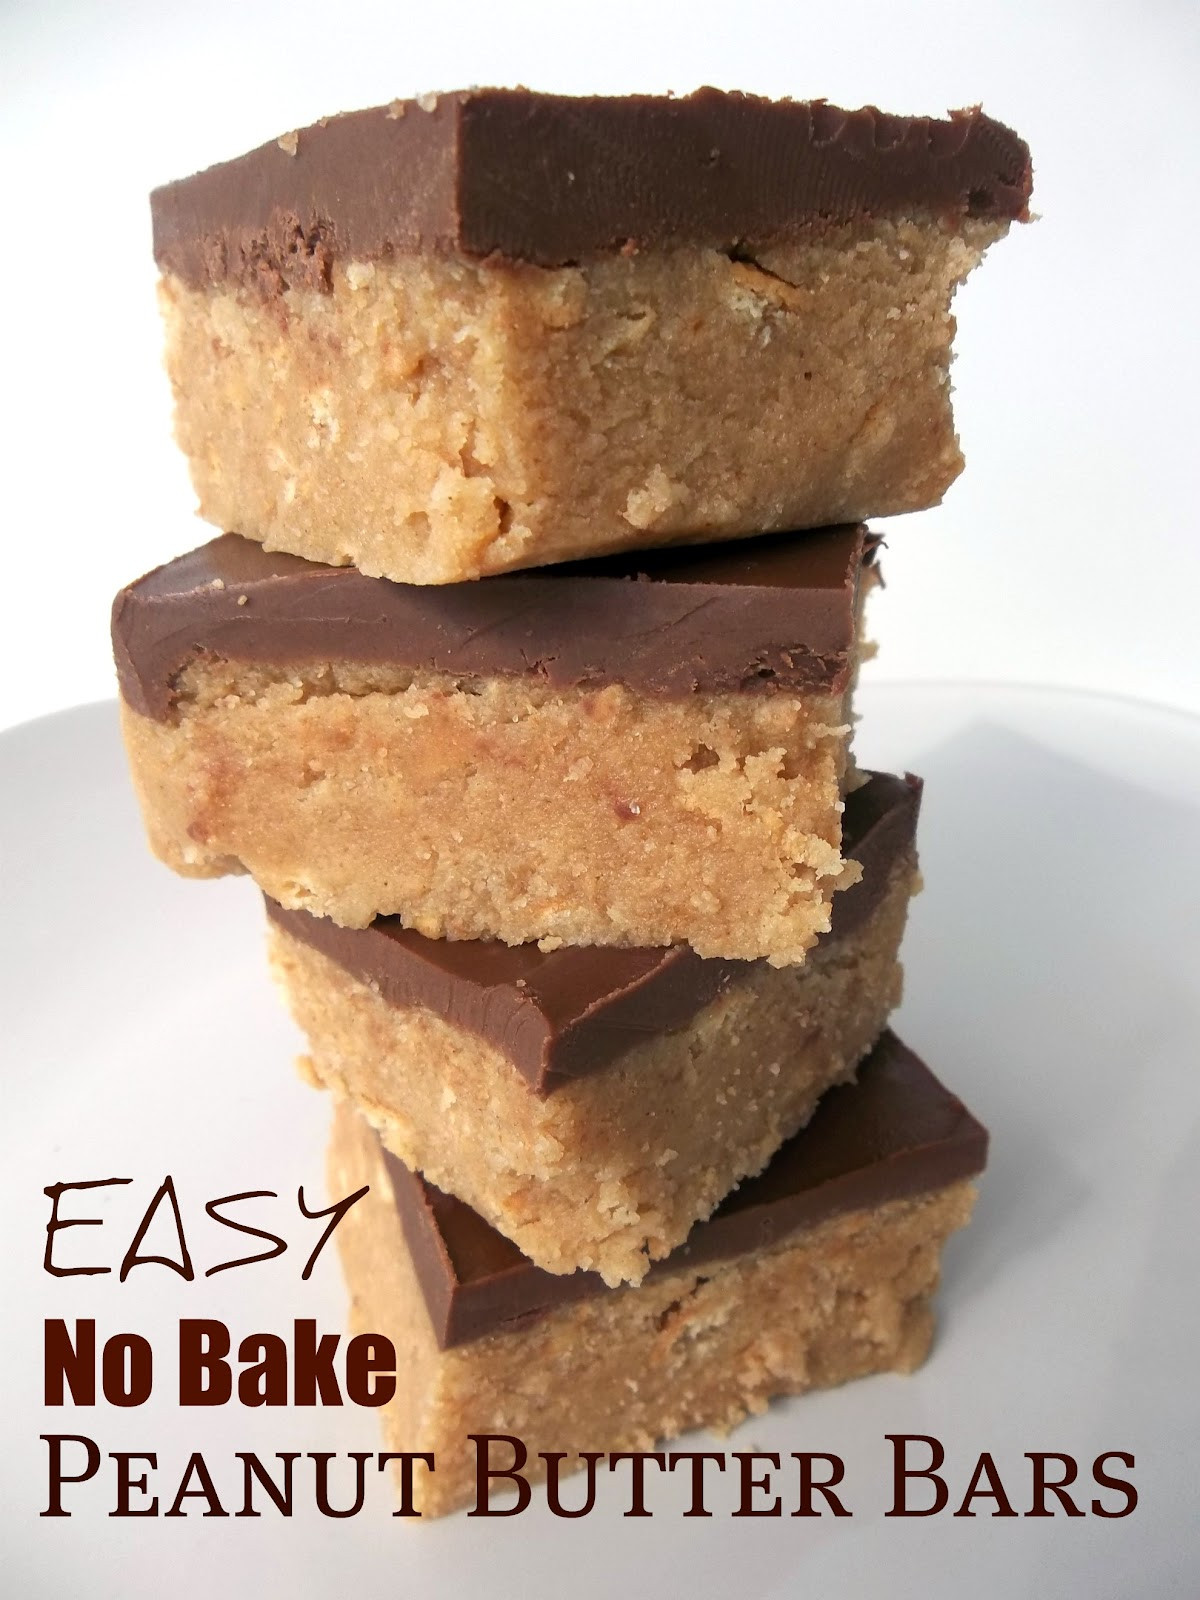 Easy Baking Dessert Recipes  A Wise Woman Builds Her Home Easy No Bake Dessert Recipes